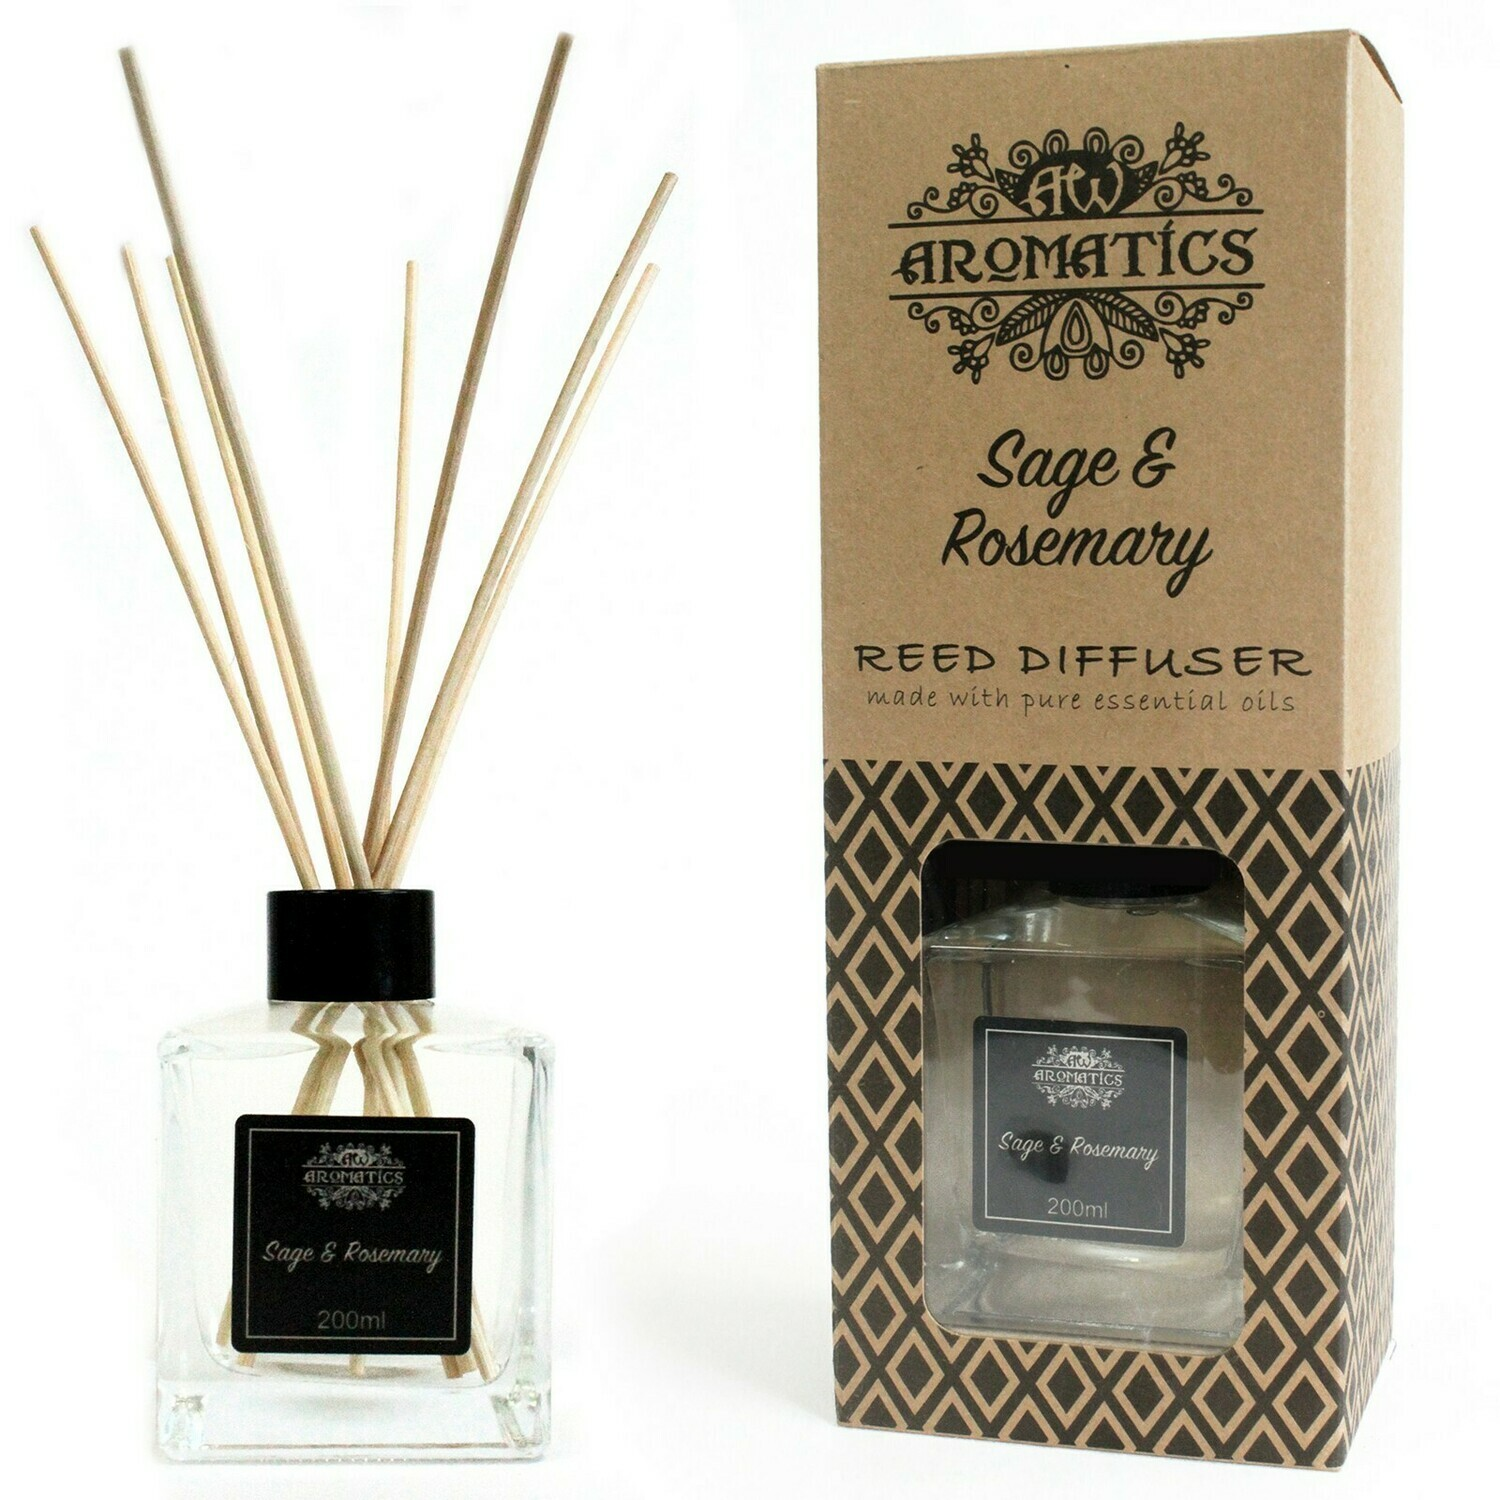 Sage & Rosemary Essential Oil Reed Diffuser 200 ml